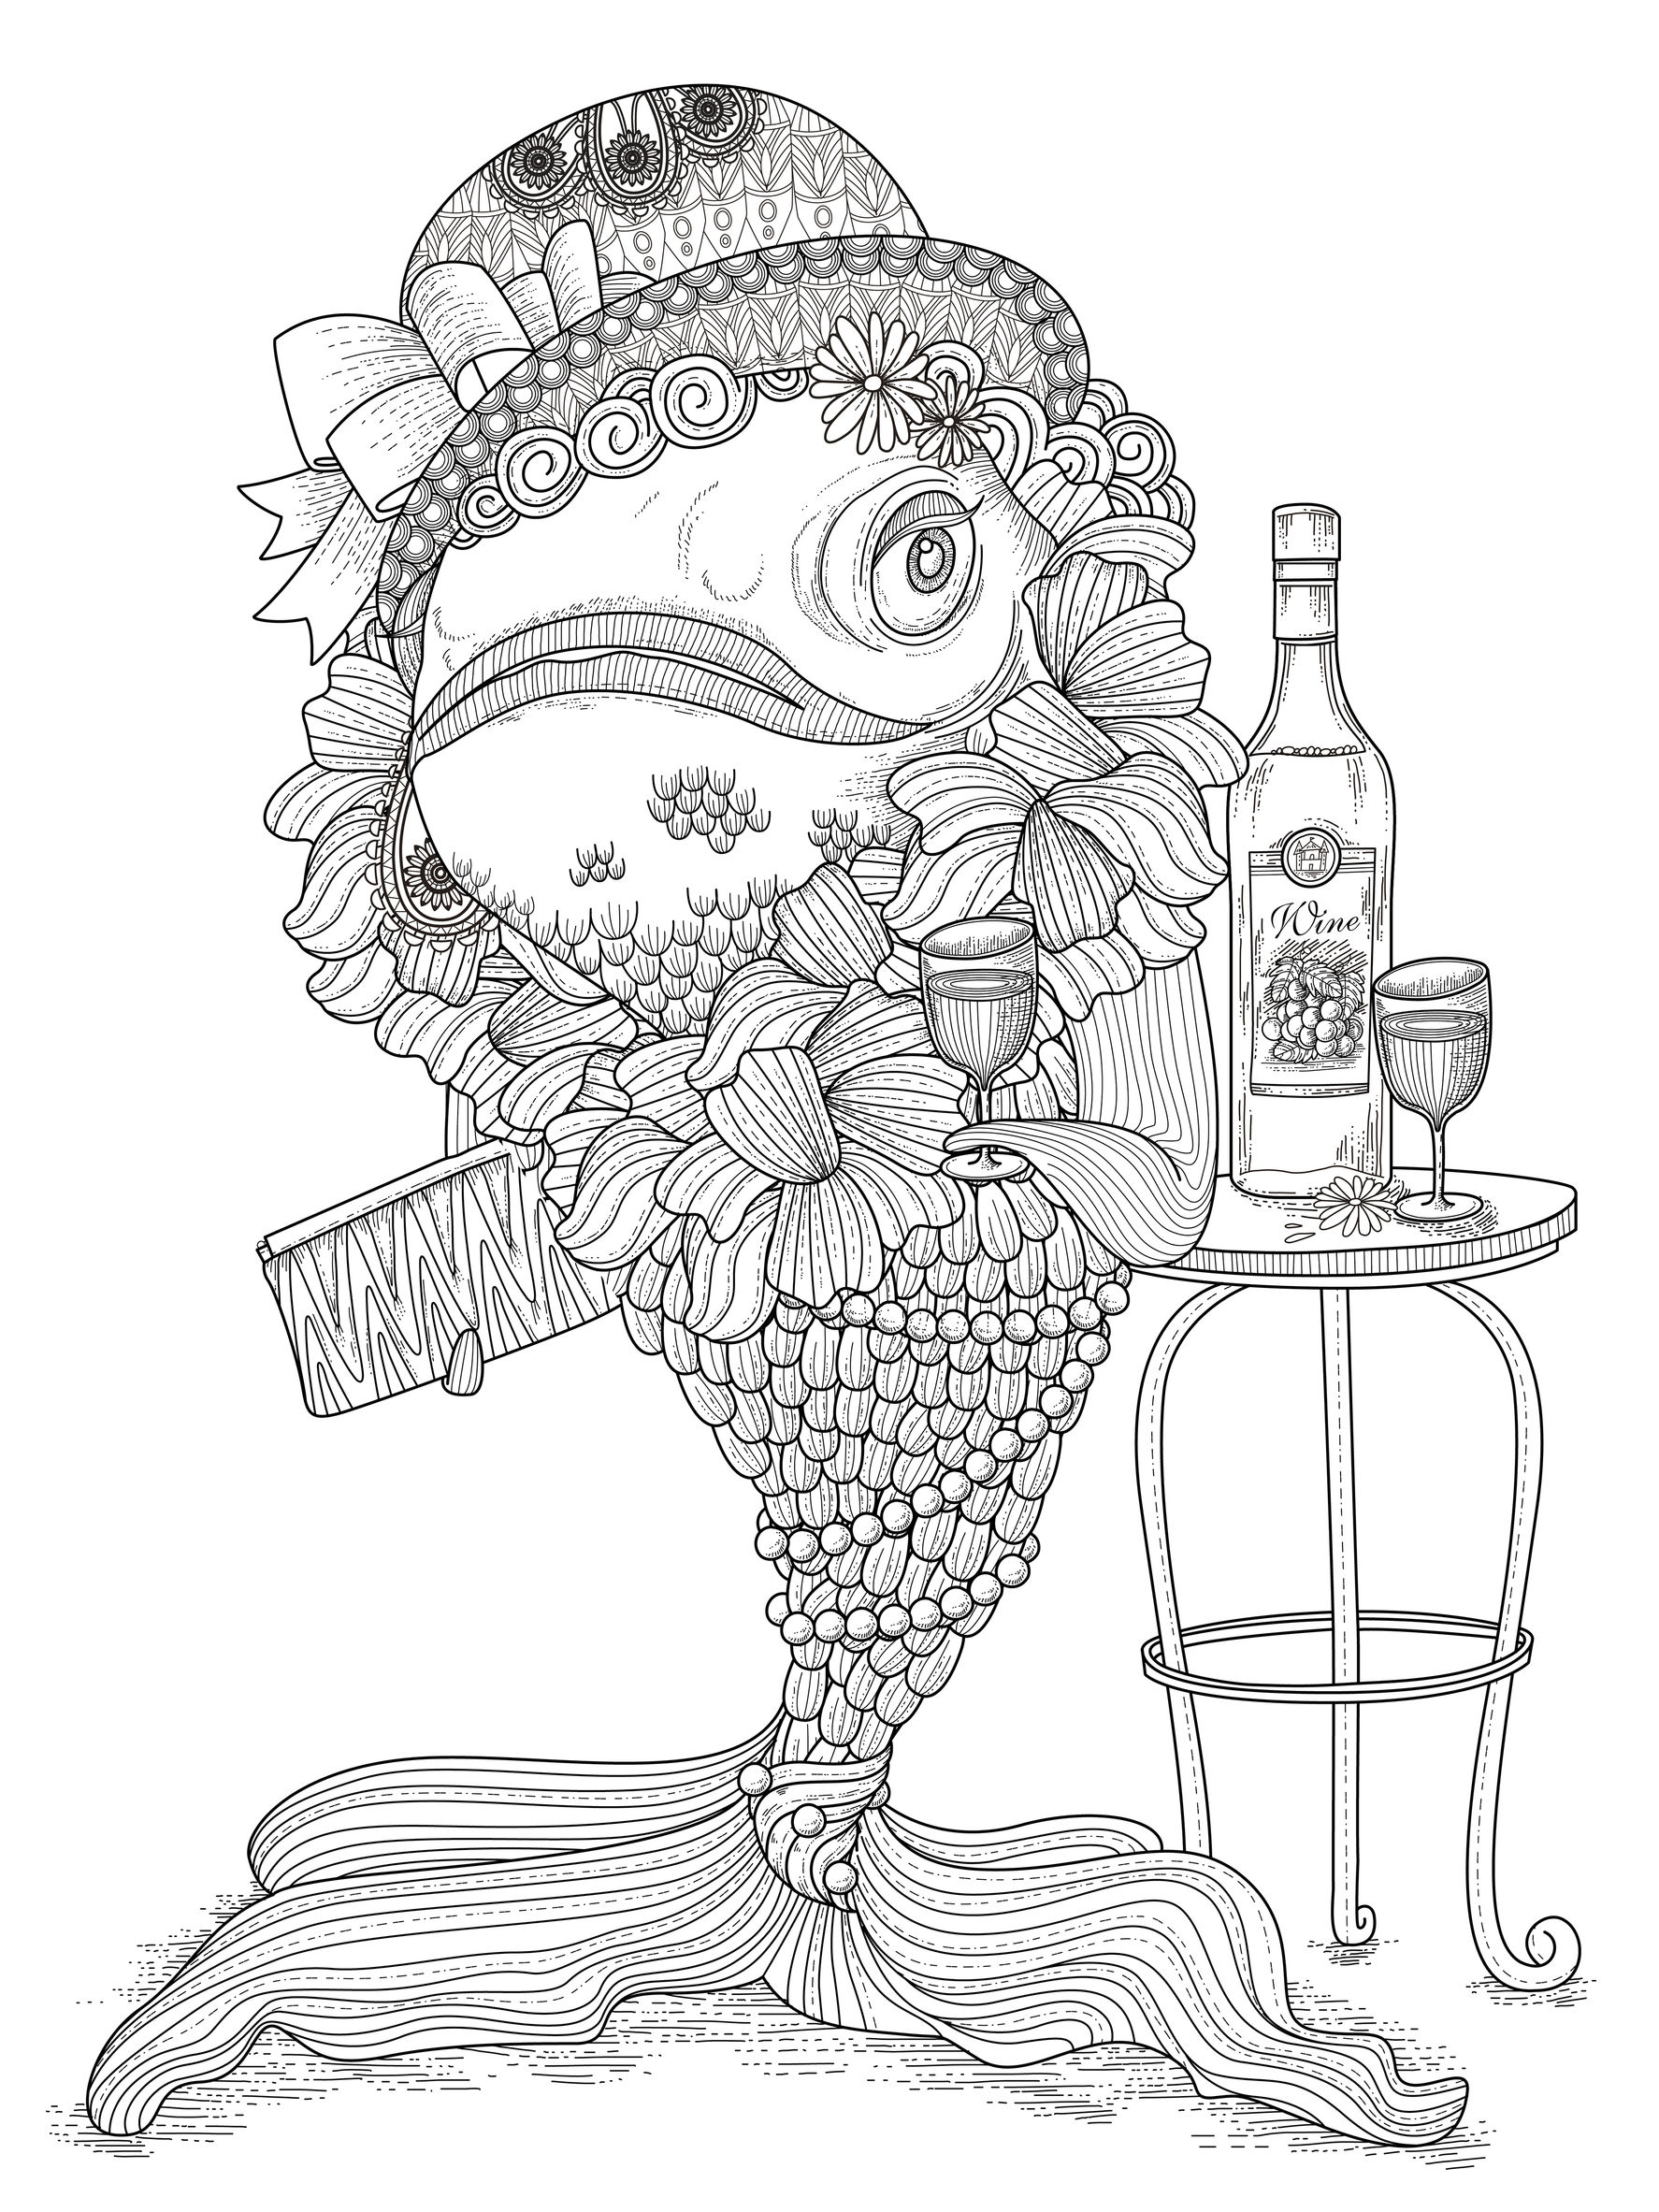 Pisces For Children Pisces Kids Coloring Pages